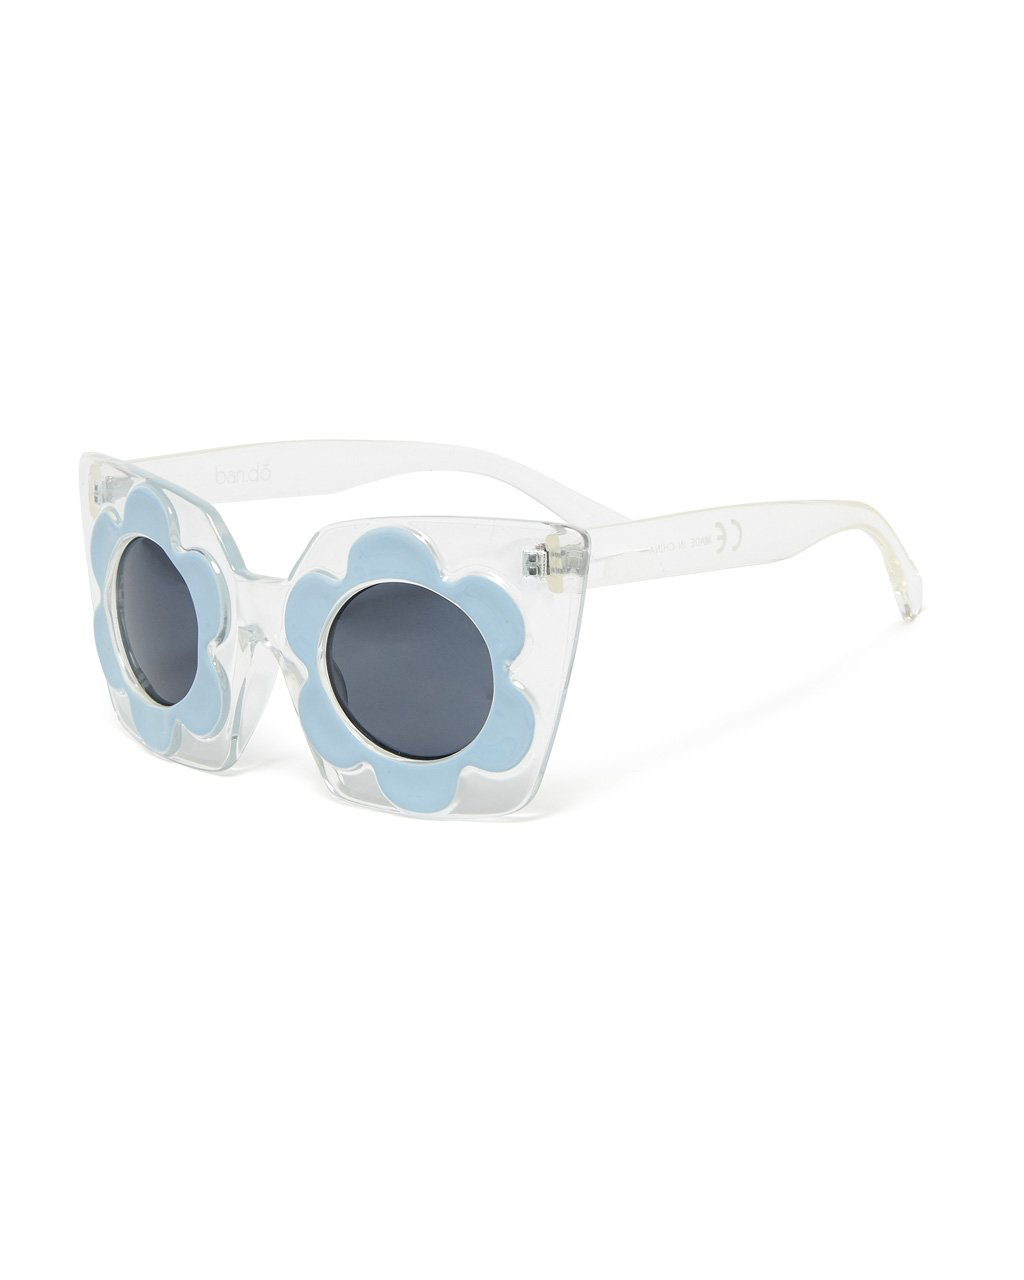 Bando Cat Eye Daisy Sunglasses